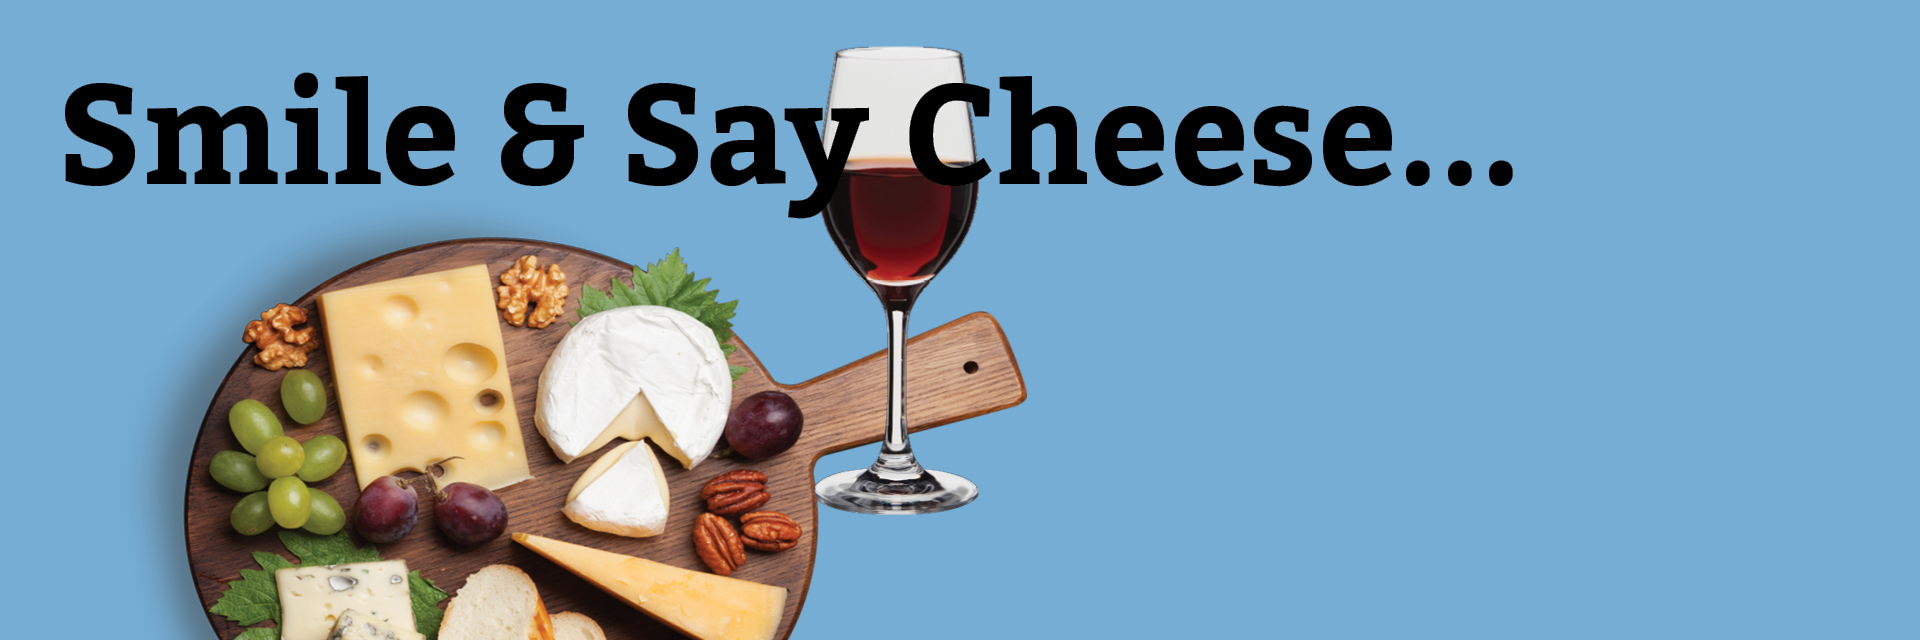 """<a href=""""https://www.congkti.org/event/its-cheesy-a-tasting.html""""                                     target="""""""">                                                                 <span class=""""slider_title"""">                                     Virtual Tasting!                                </span>                                                                 </a>                                                                                                                                                                                       <span class=""""slider_description"""">Saturday evening, January 23rd...</span>                                                                                     <a href=""""https://www.congkti.org/event/its-cheesy-a-tasting.html"""" class=""""slider_link""""                             target="""""""">                             Say Cheese here...                            </a>"""